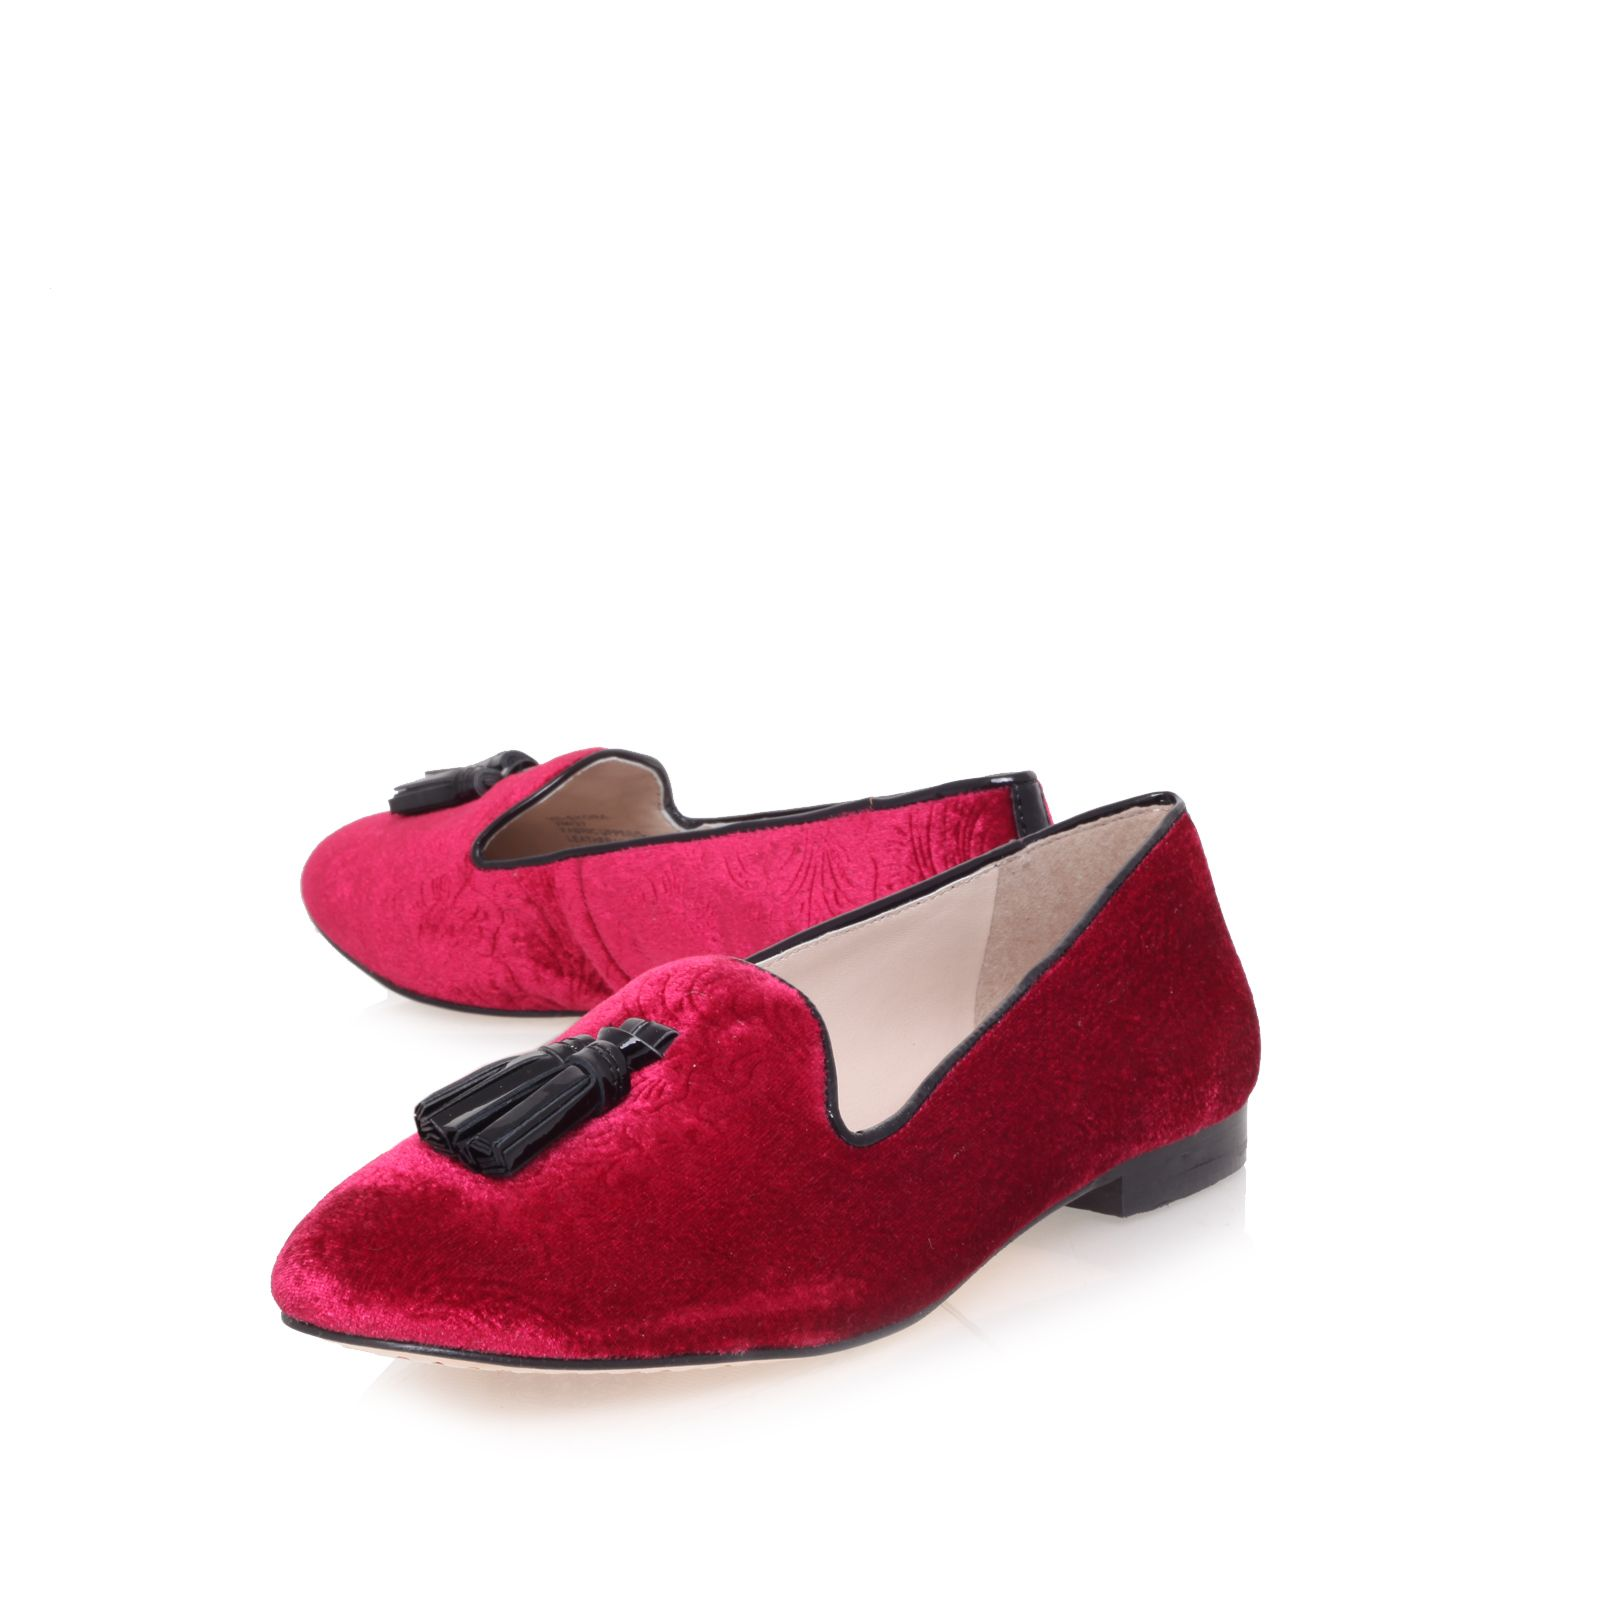 Ekora flat slipper shoes